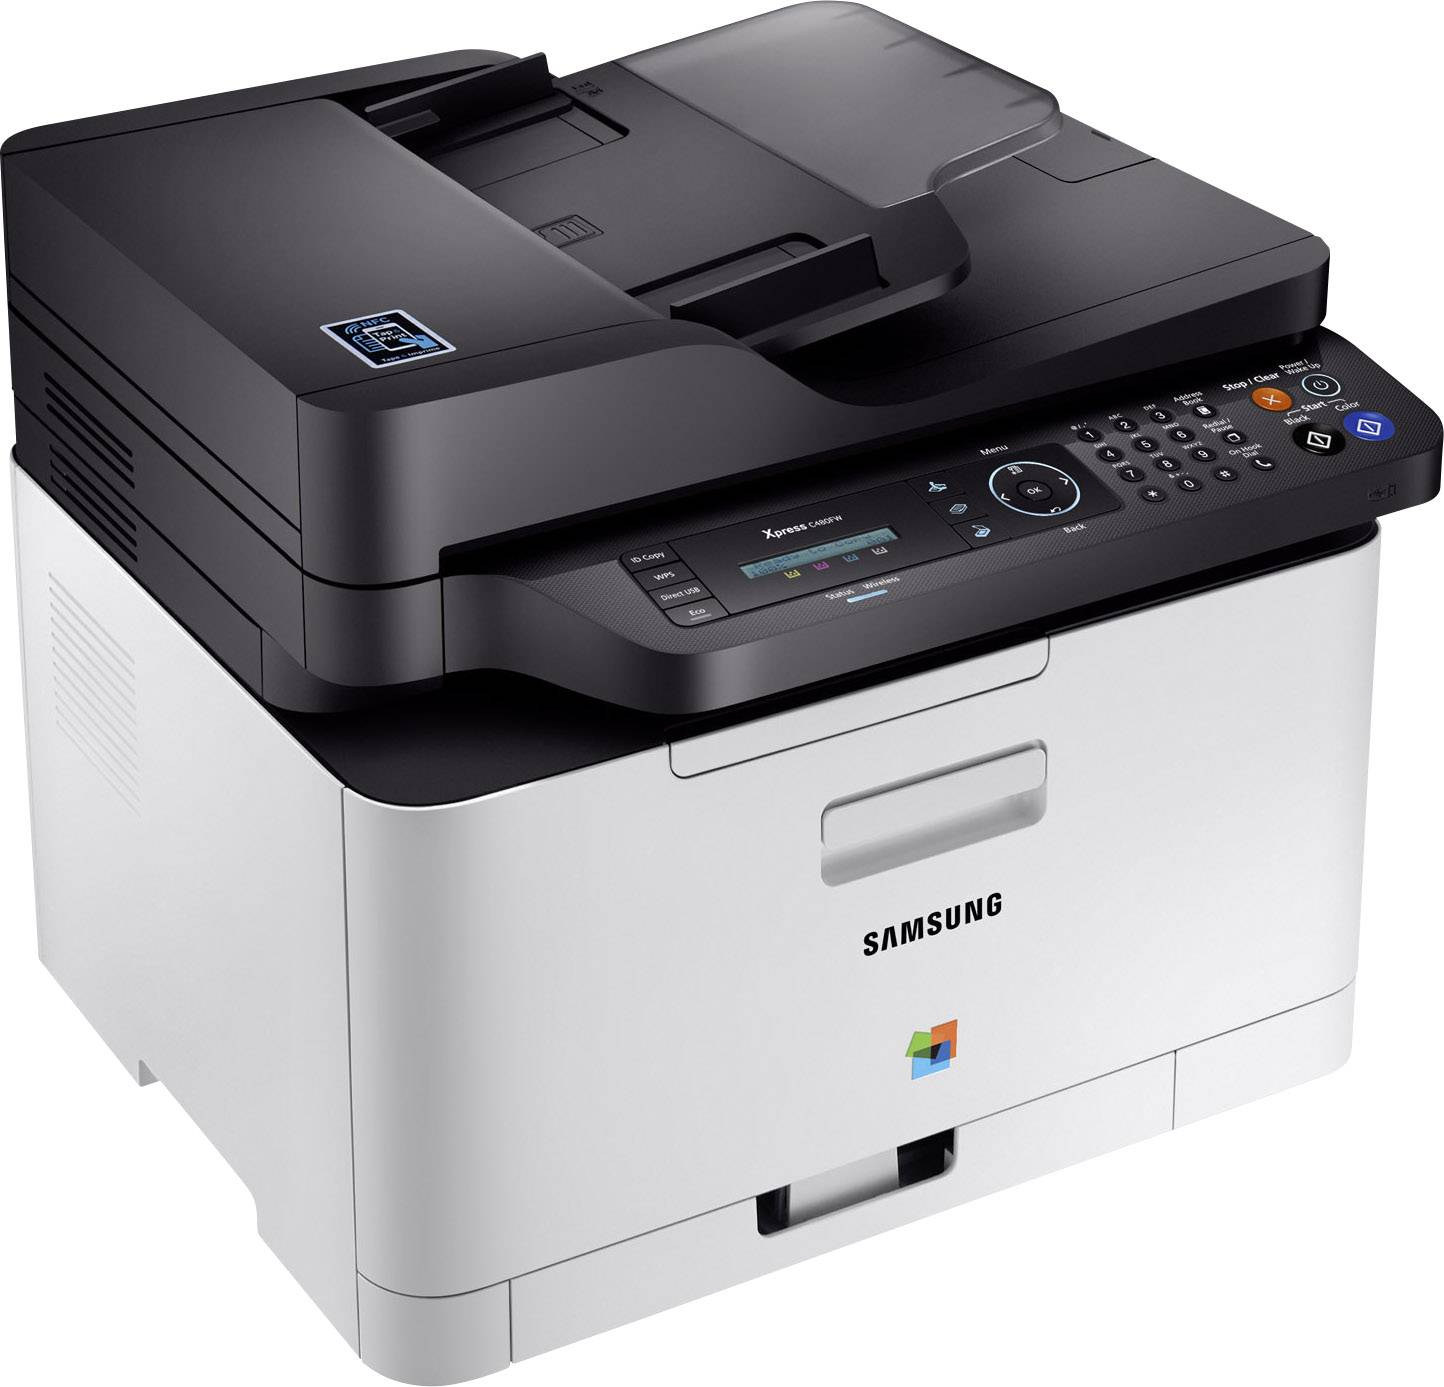 Samsung Multifunktionsdrucker Samsung Xpress C480fw Farblaser Multifunktionsdrucker A4